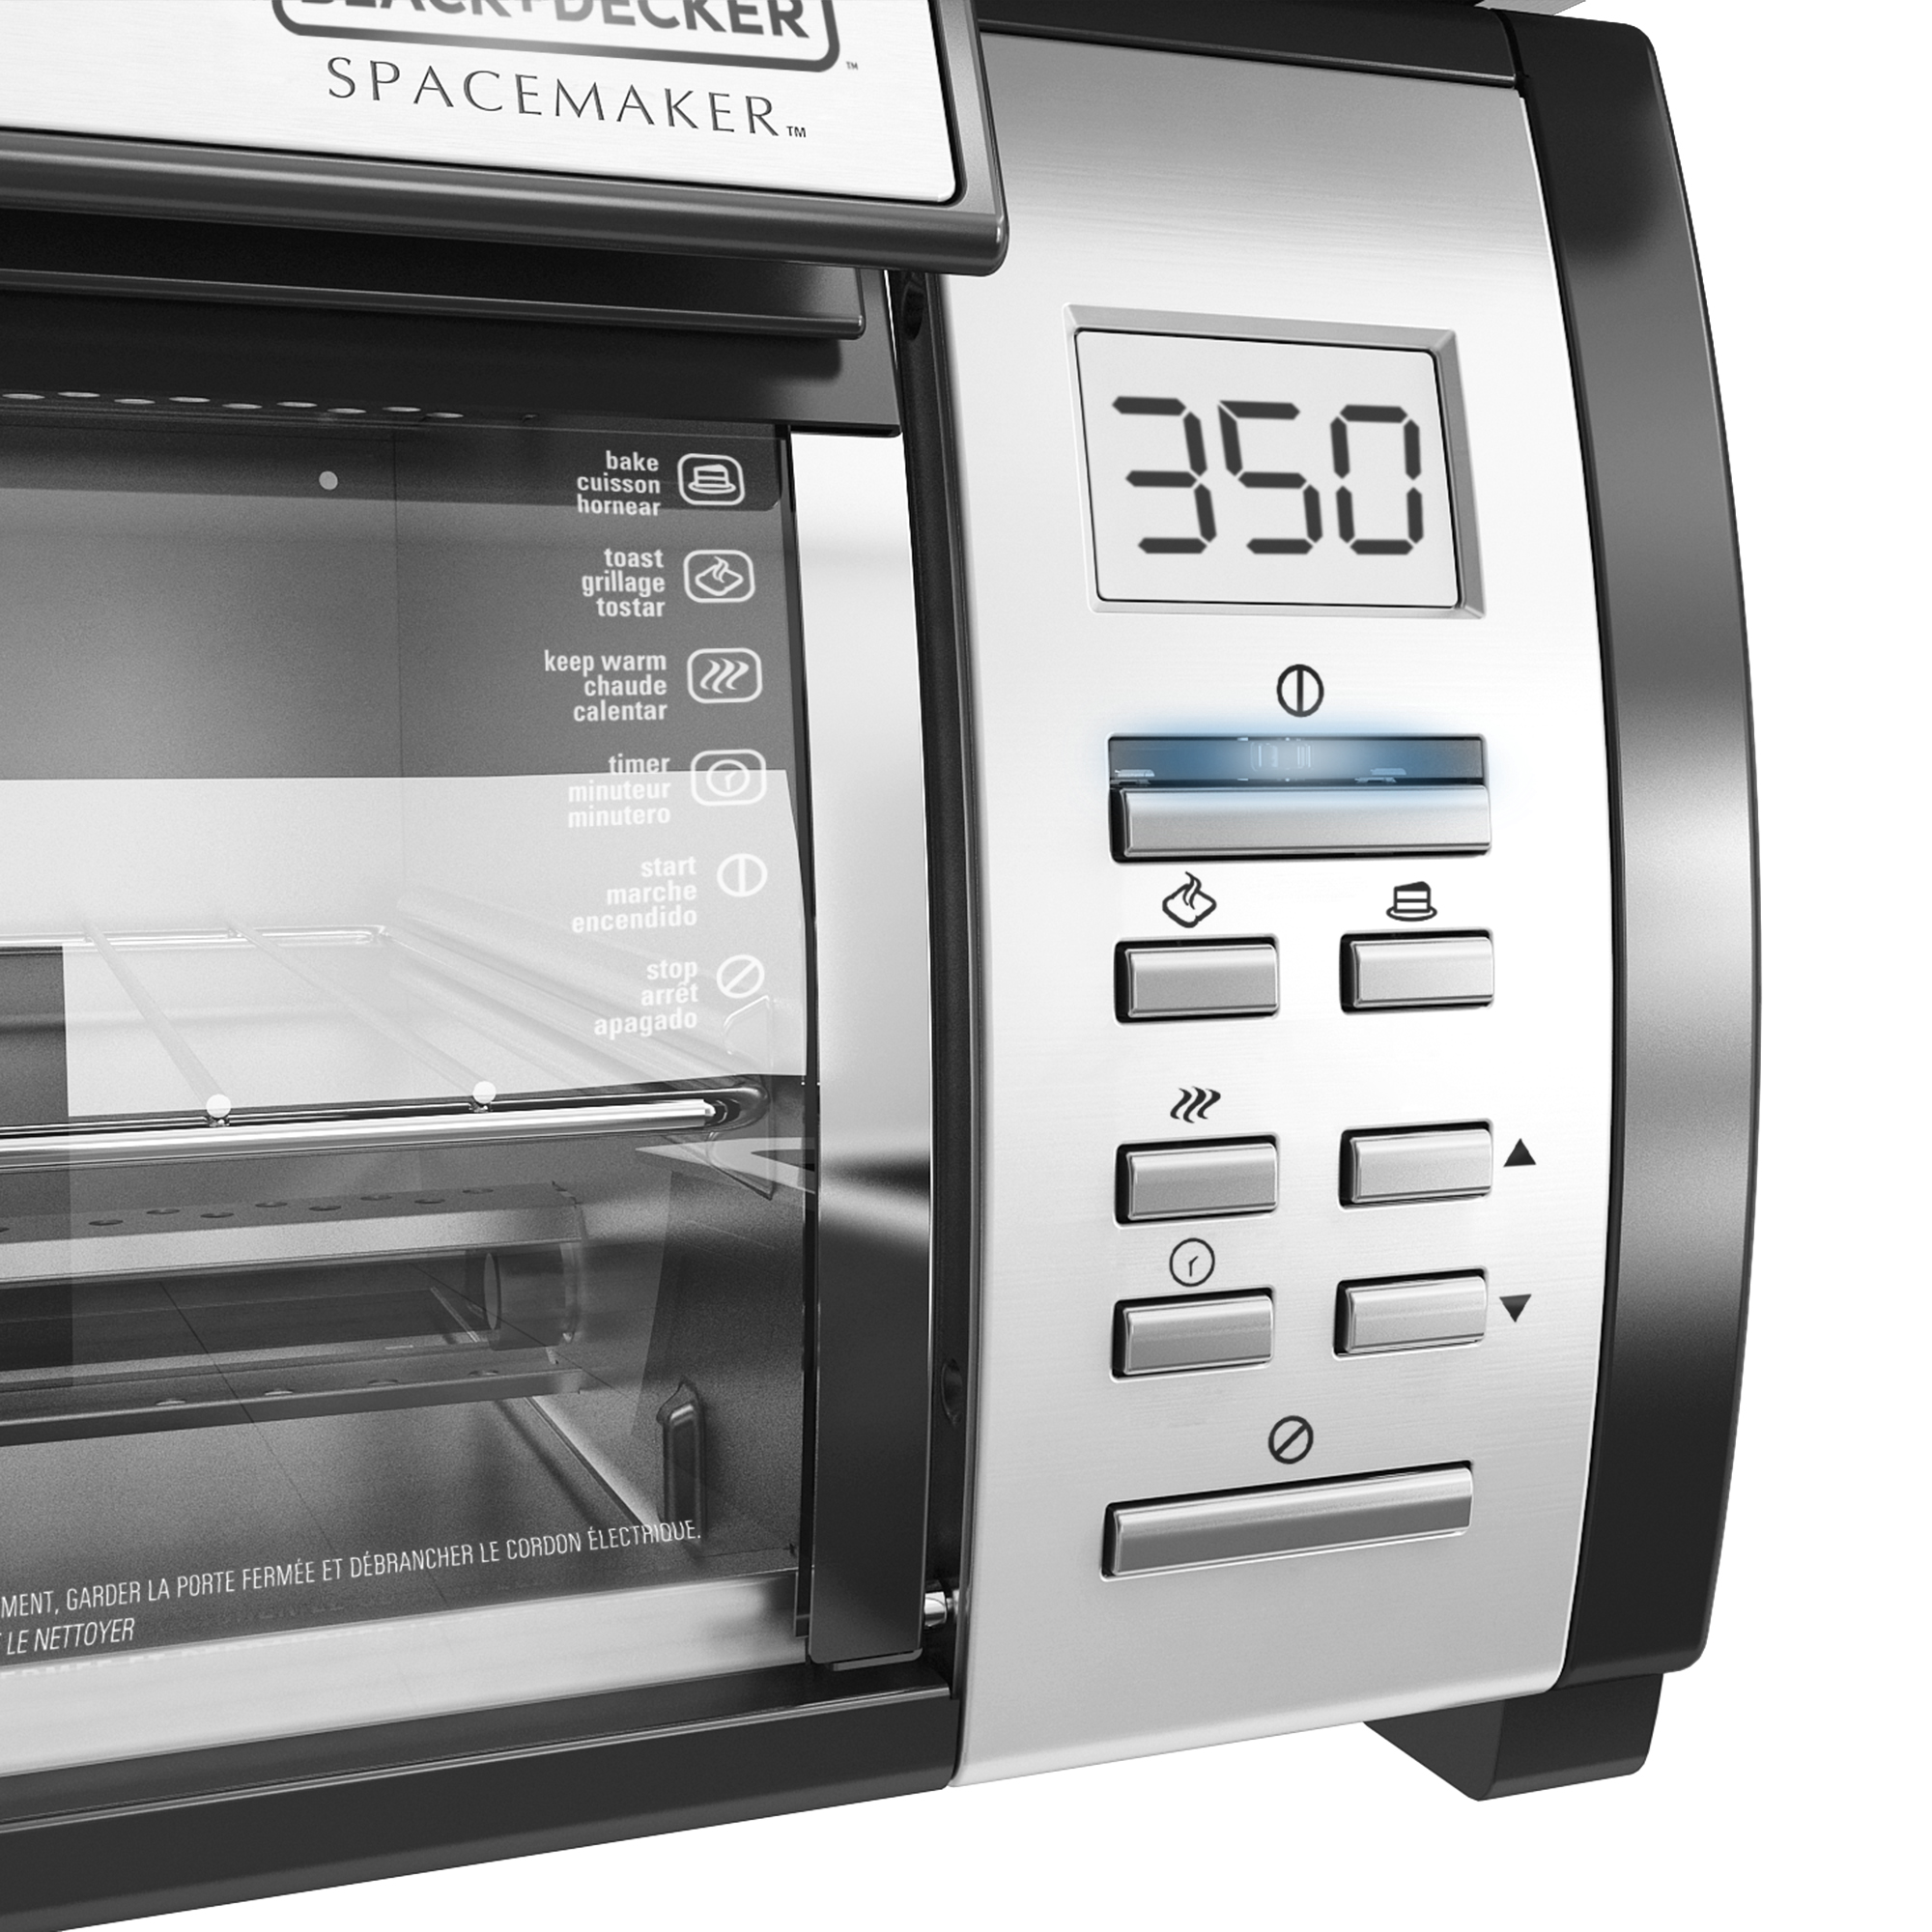 Genial SpaceMaker™ Under The Cabinet 4 Slice Toaster Oven